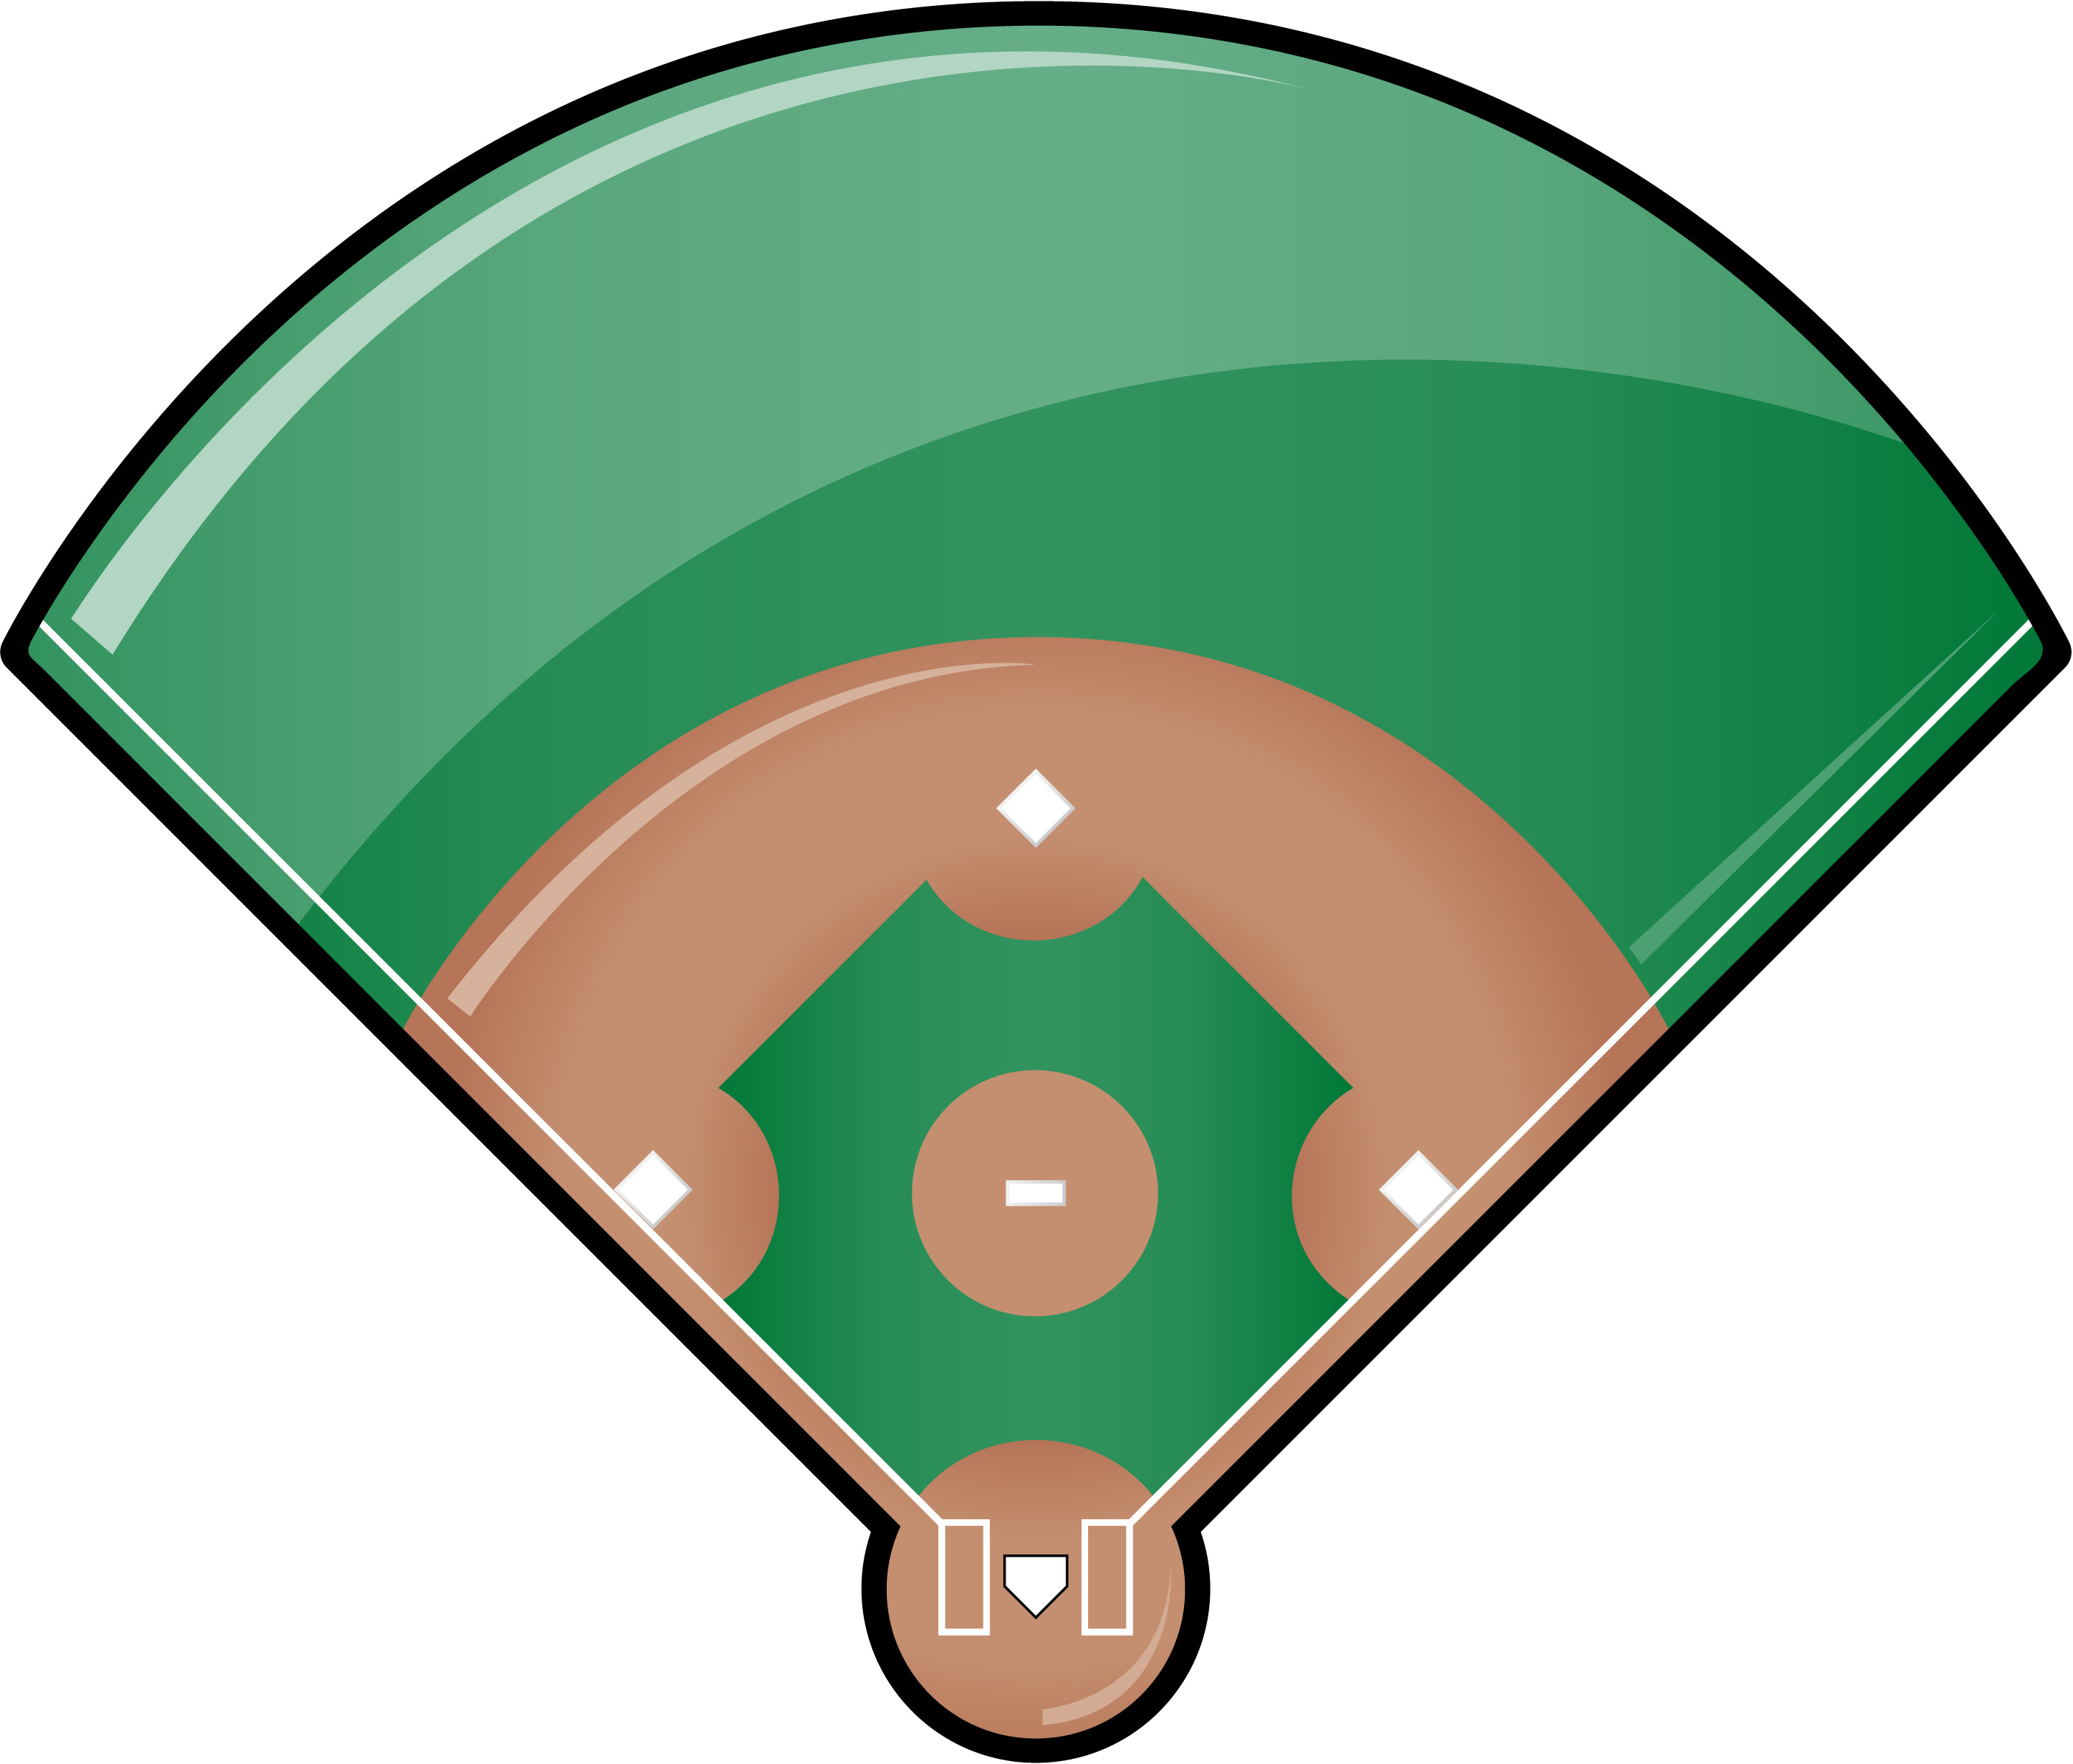 Download High Quality baseball diamond clipart youth.